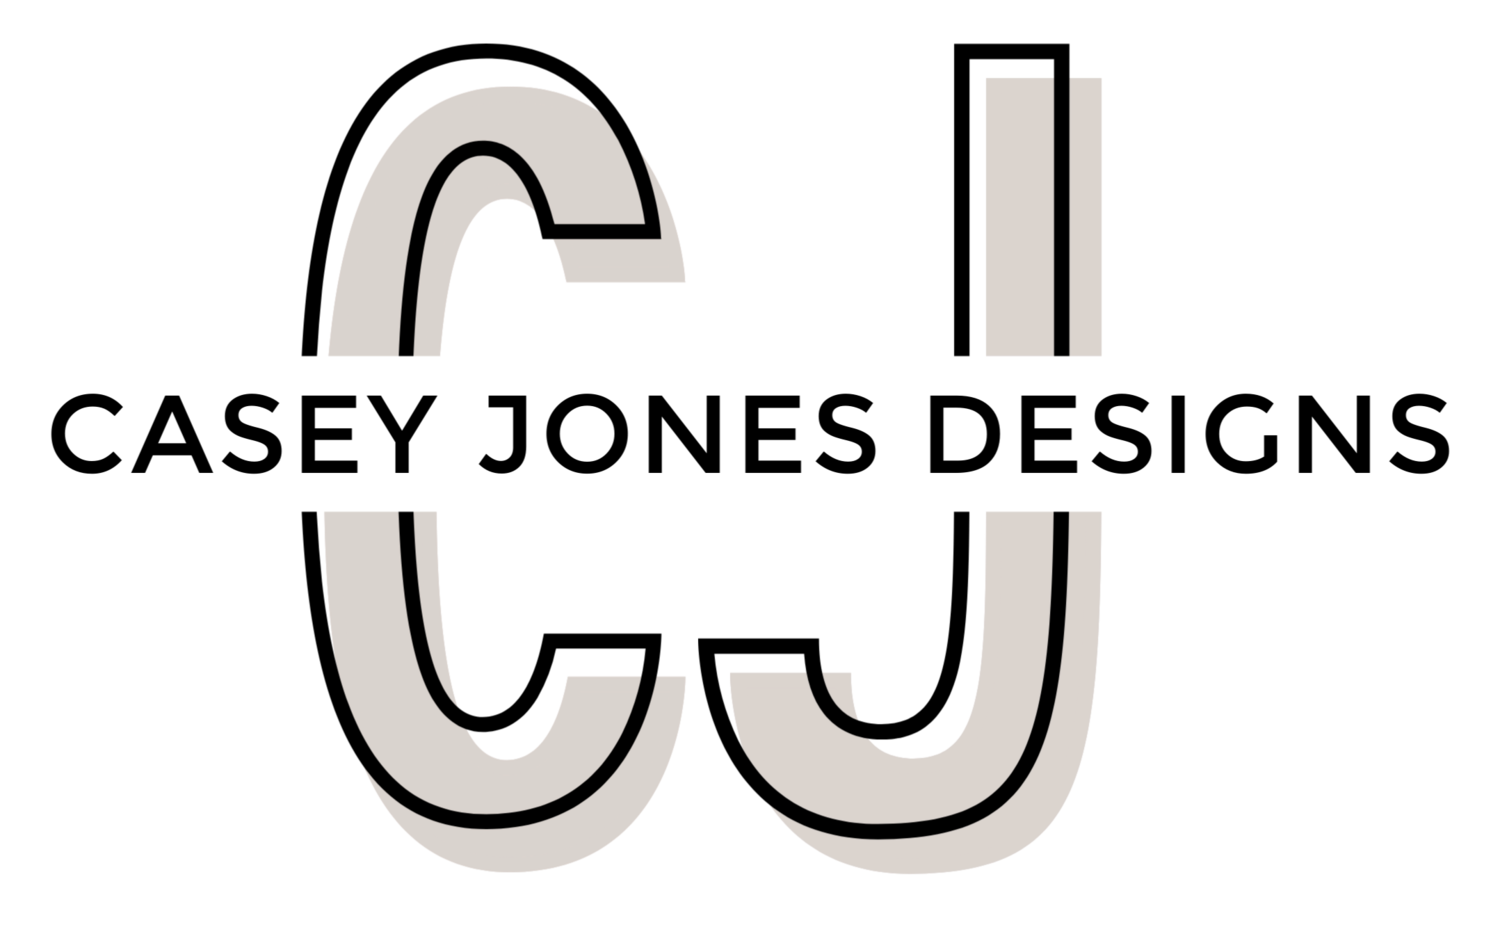 Casey Jones Designs